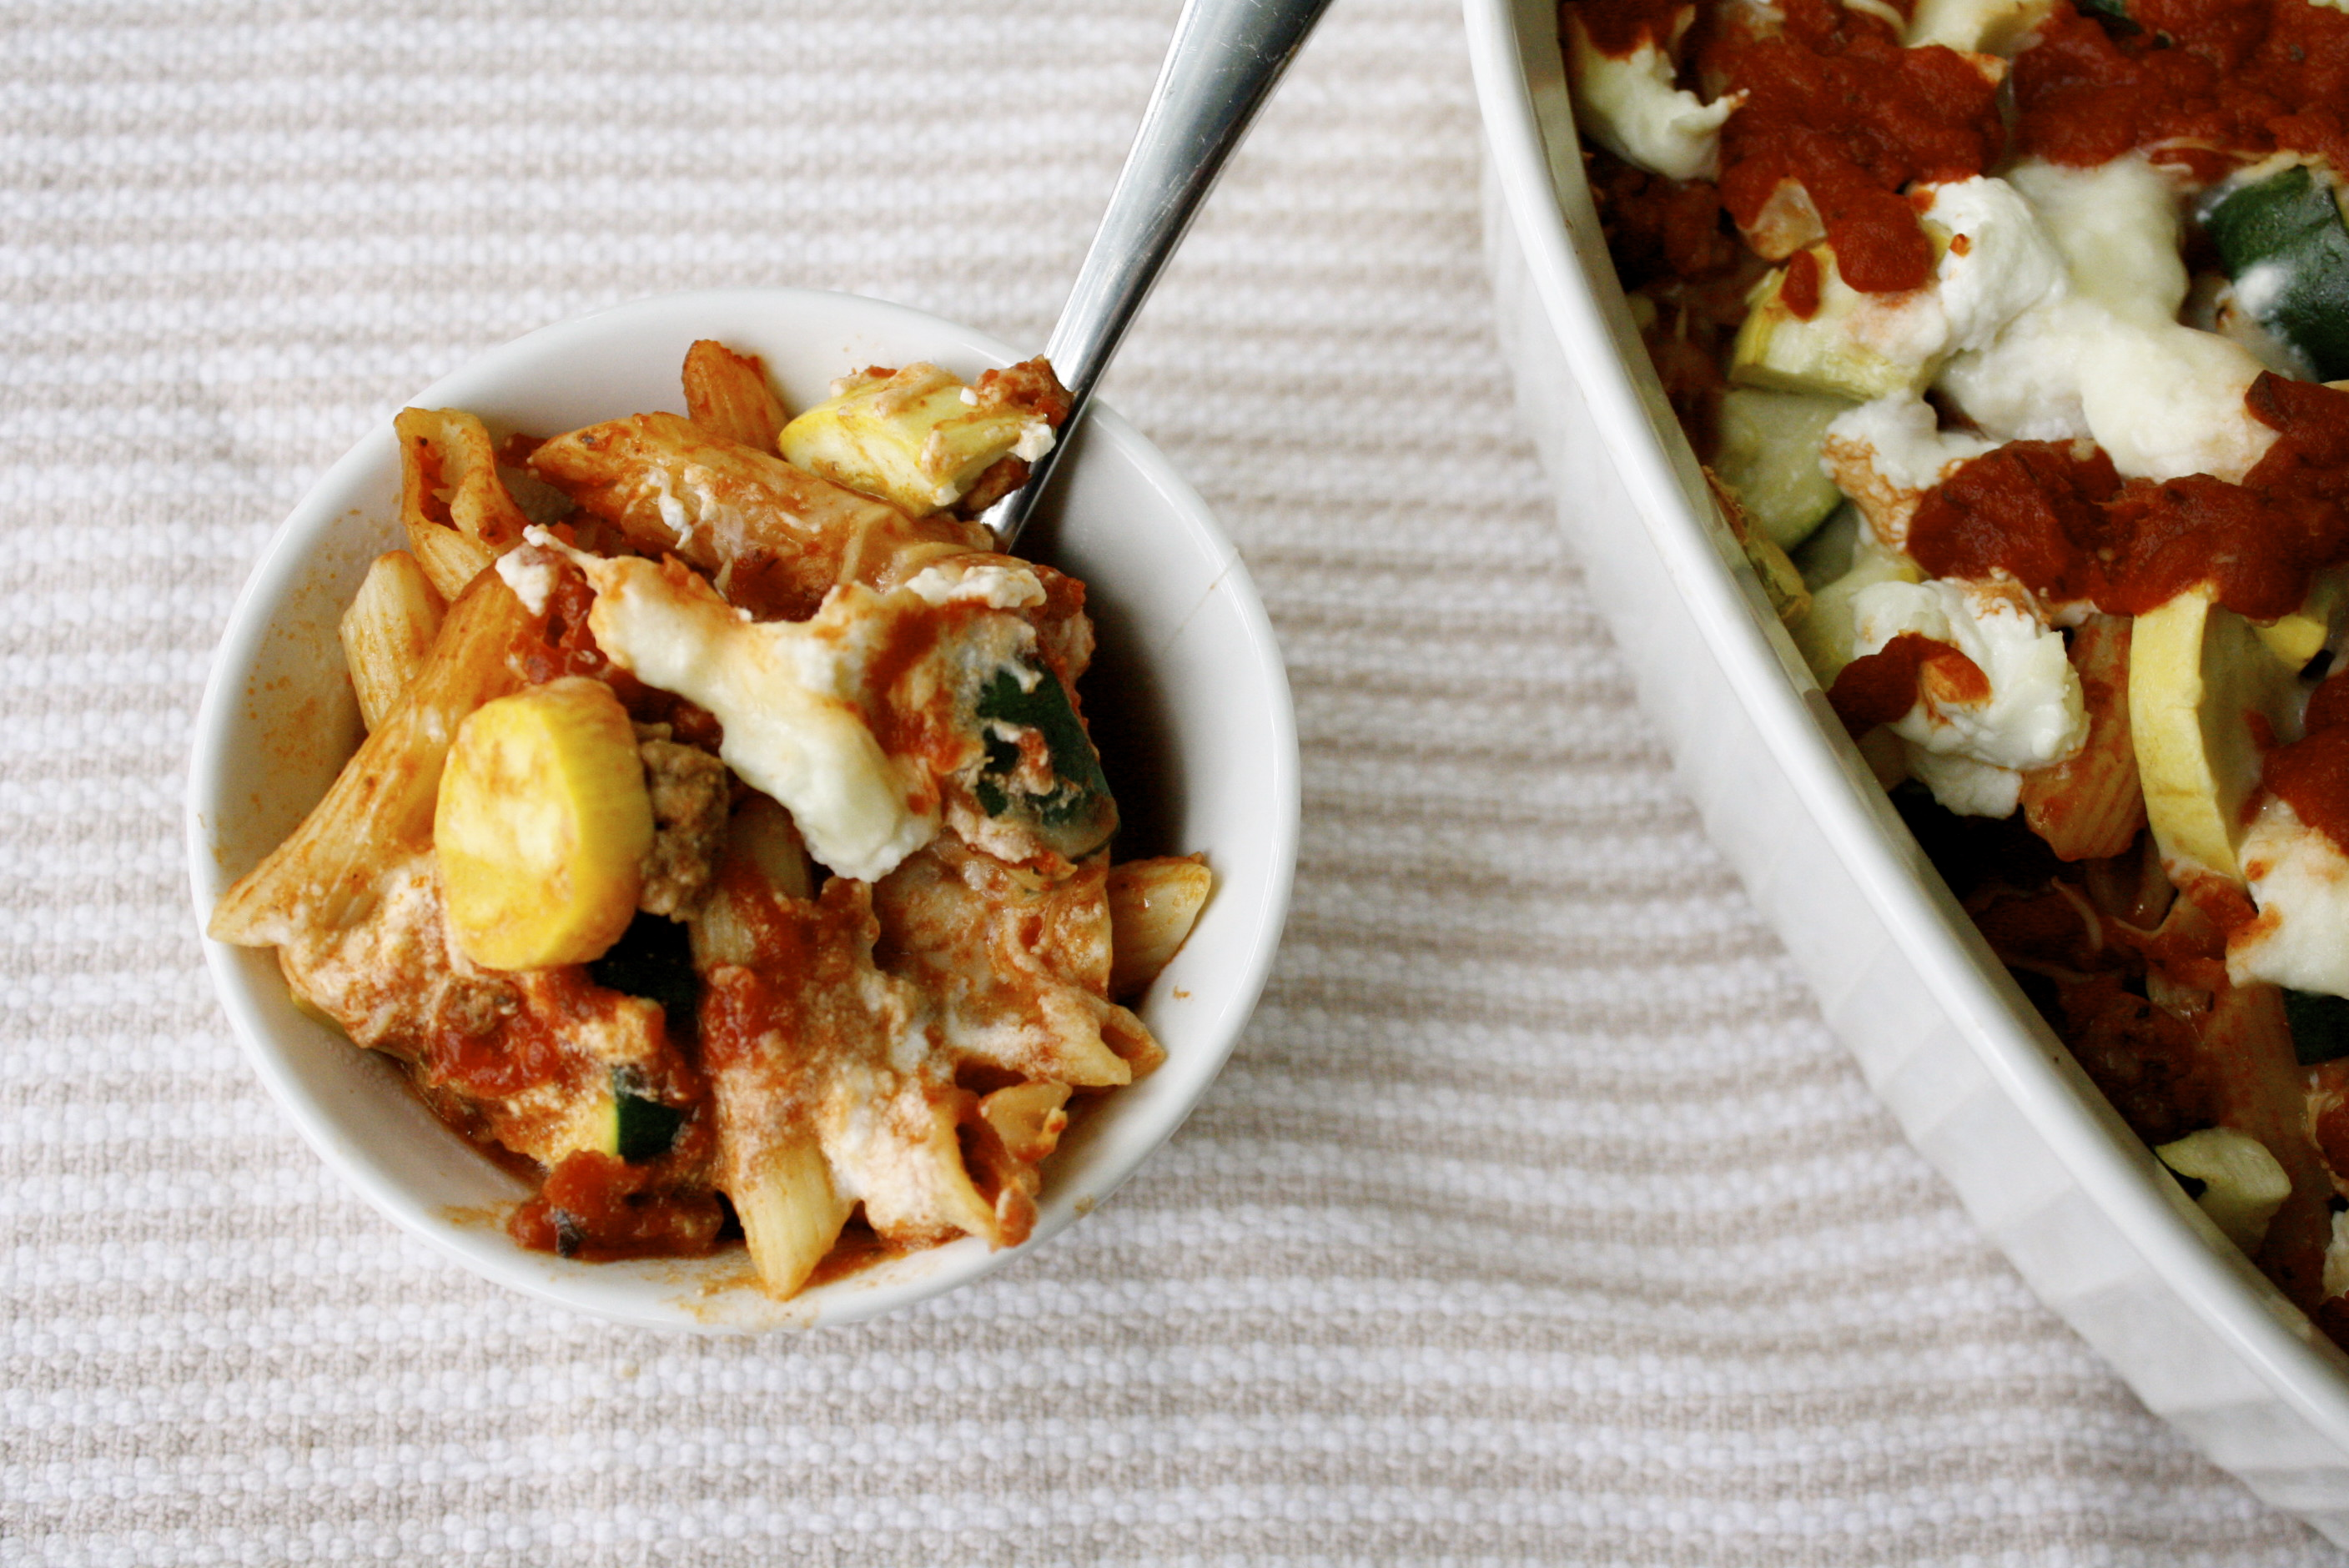 Baked Penne with Zucchini and Goat Cheese